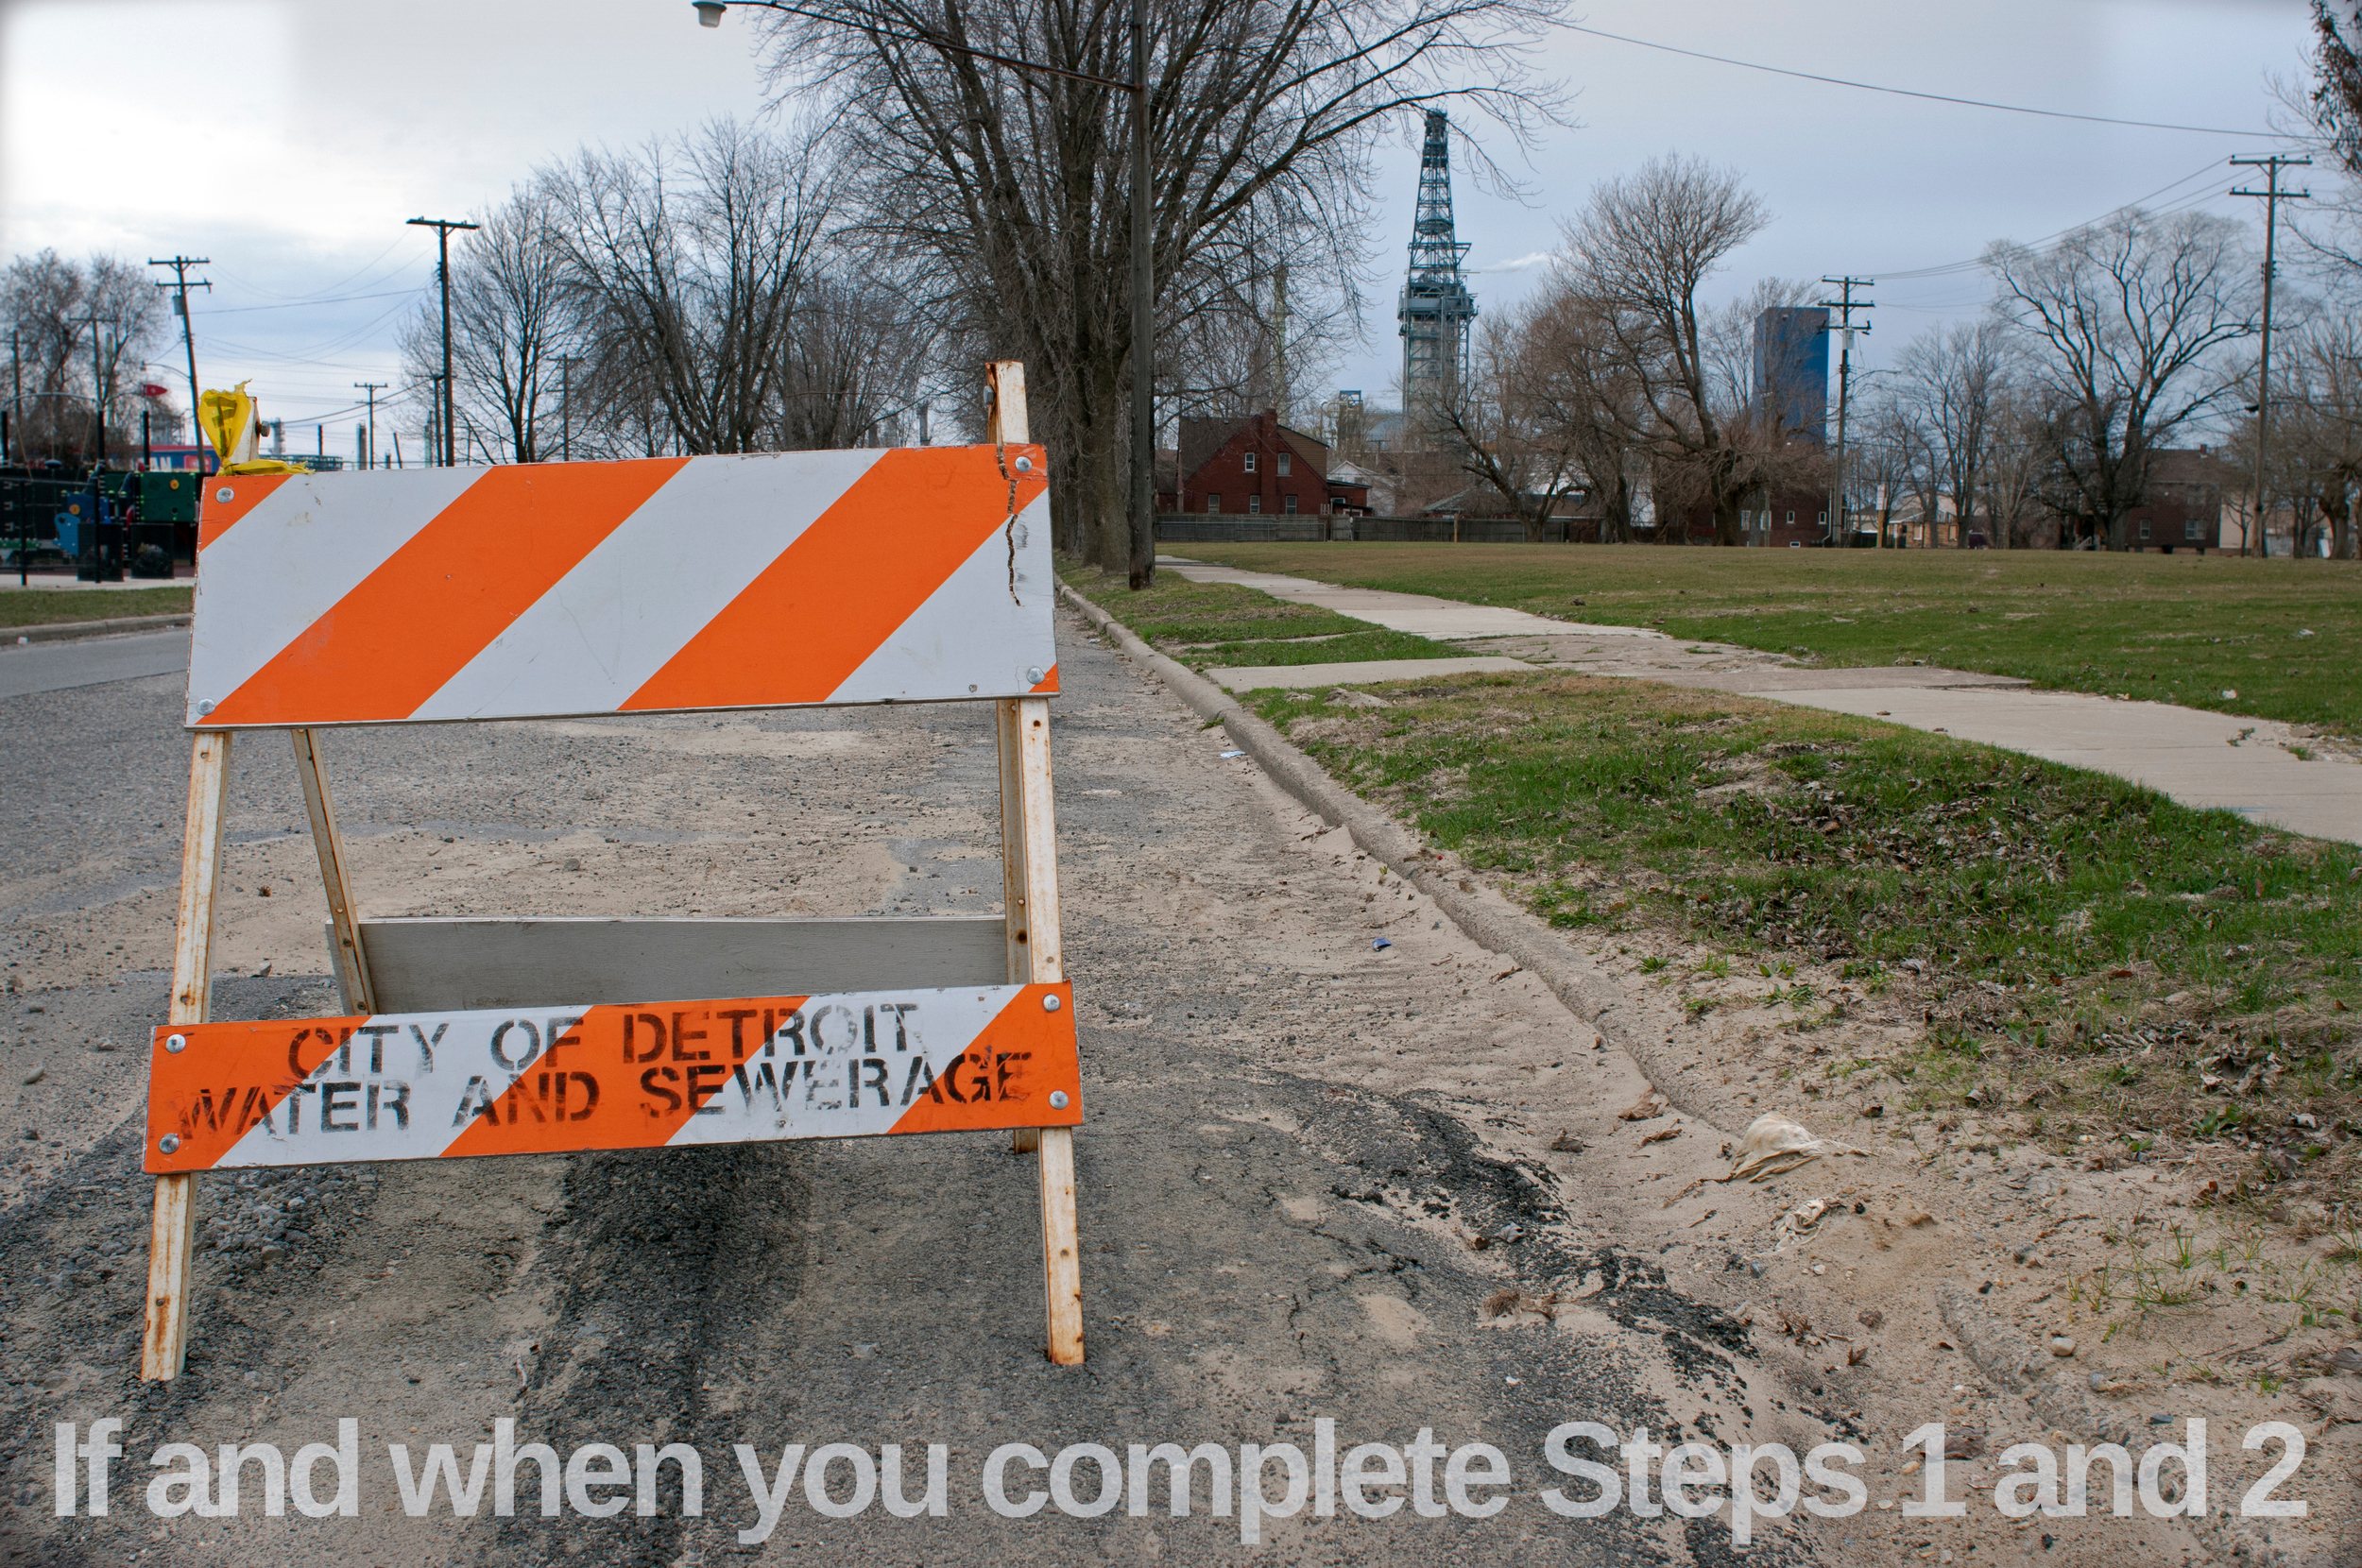 24-Construction+Sign-If+and+Wh-3578945334-O.jpg